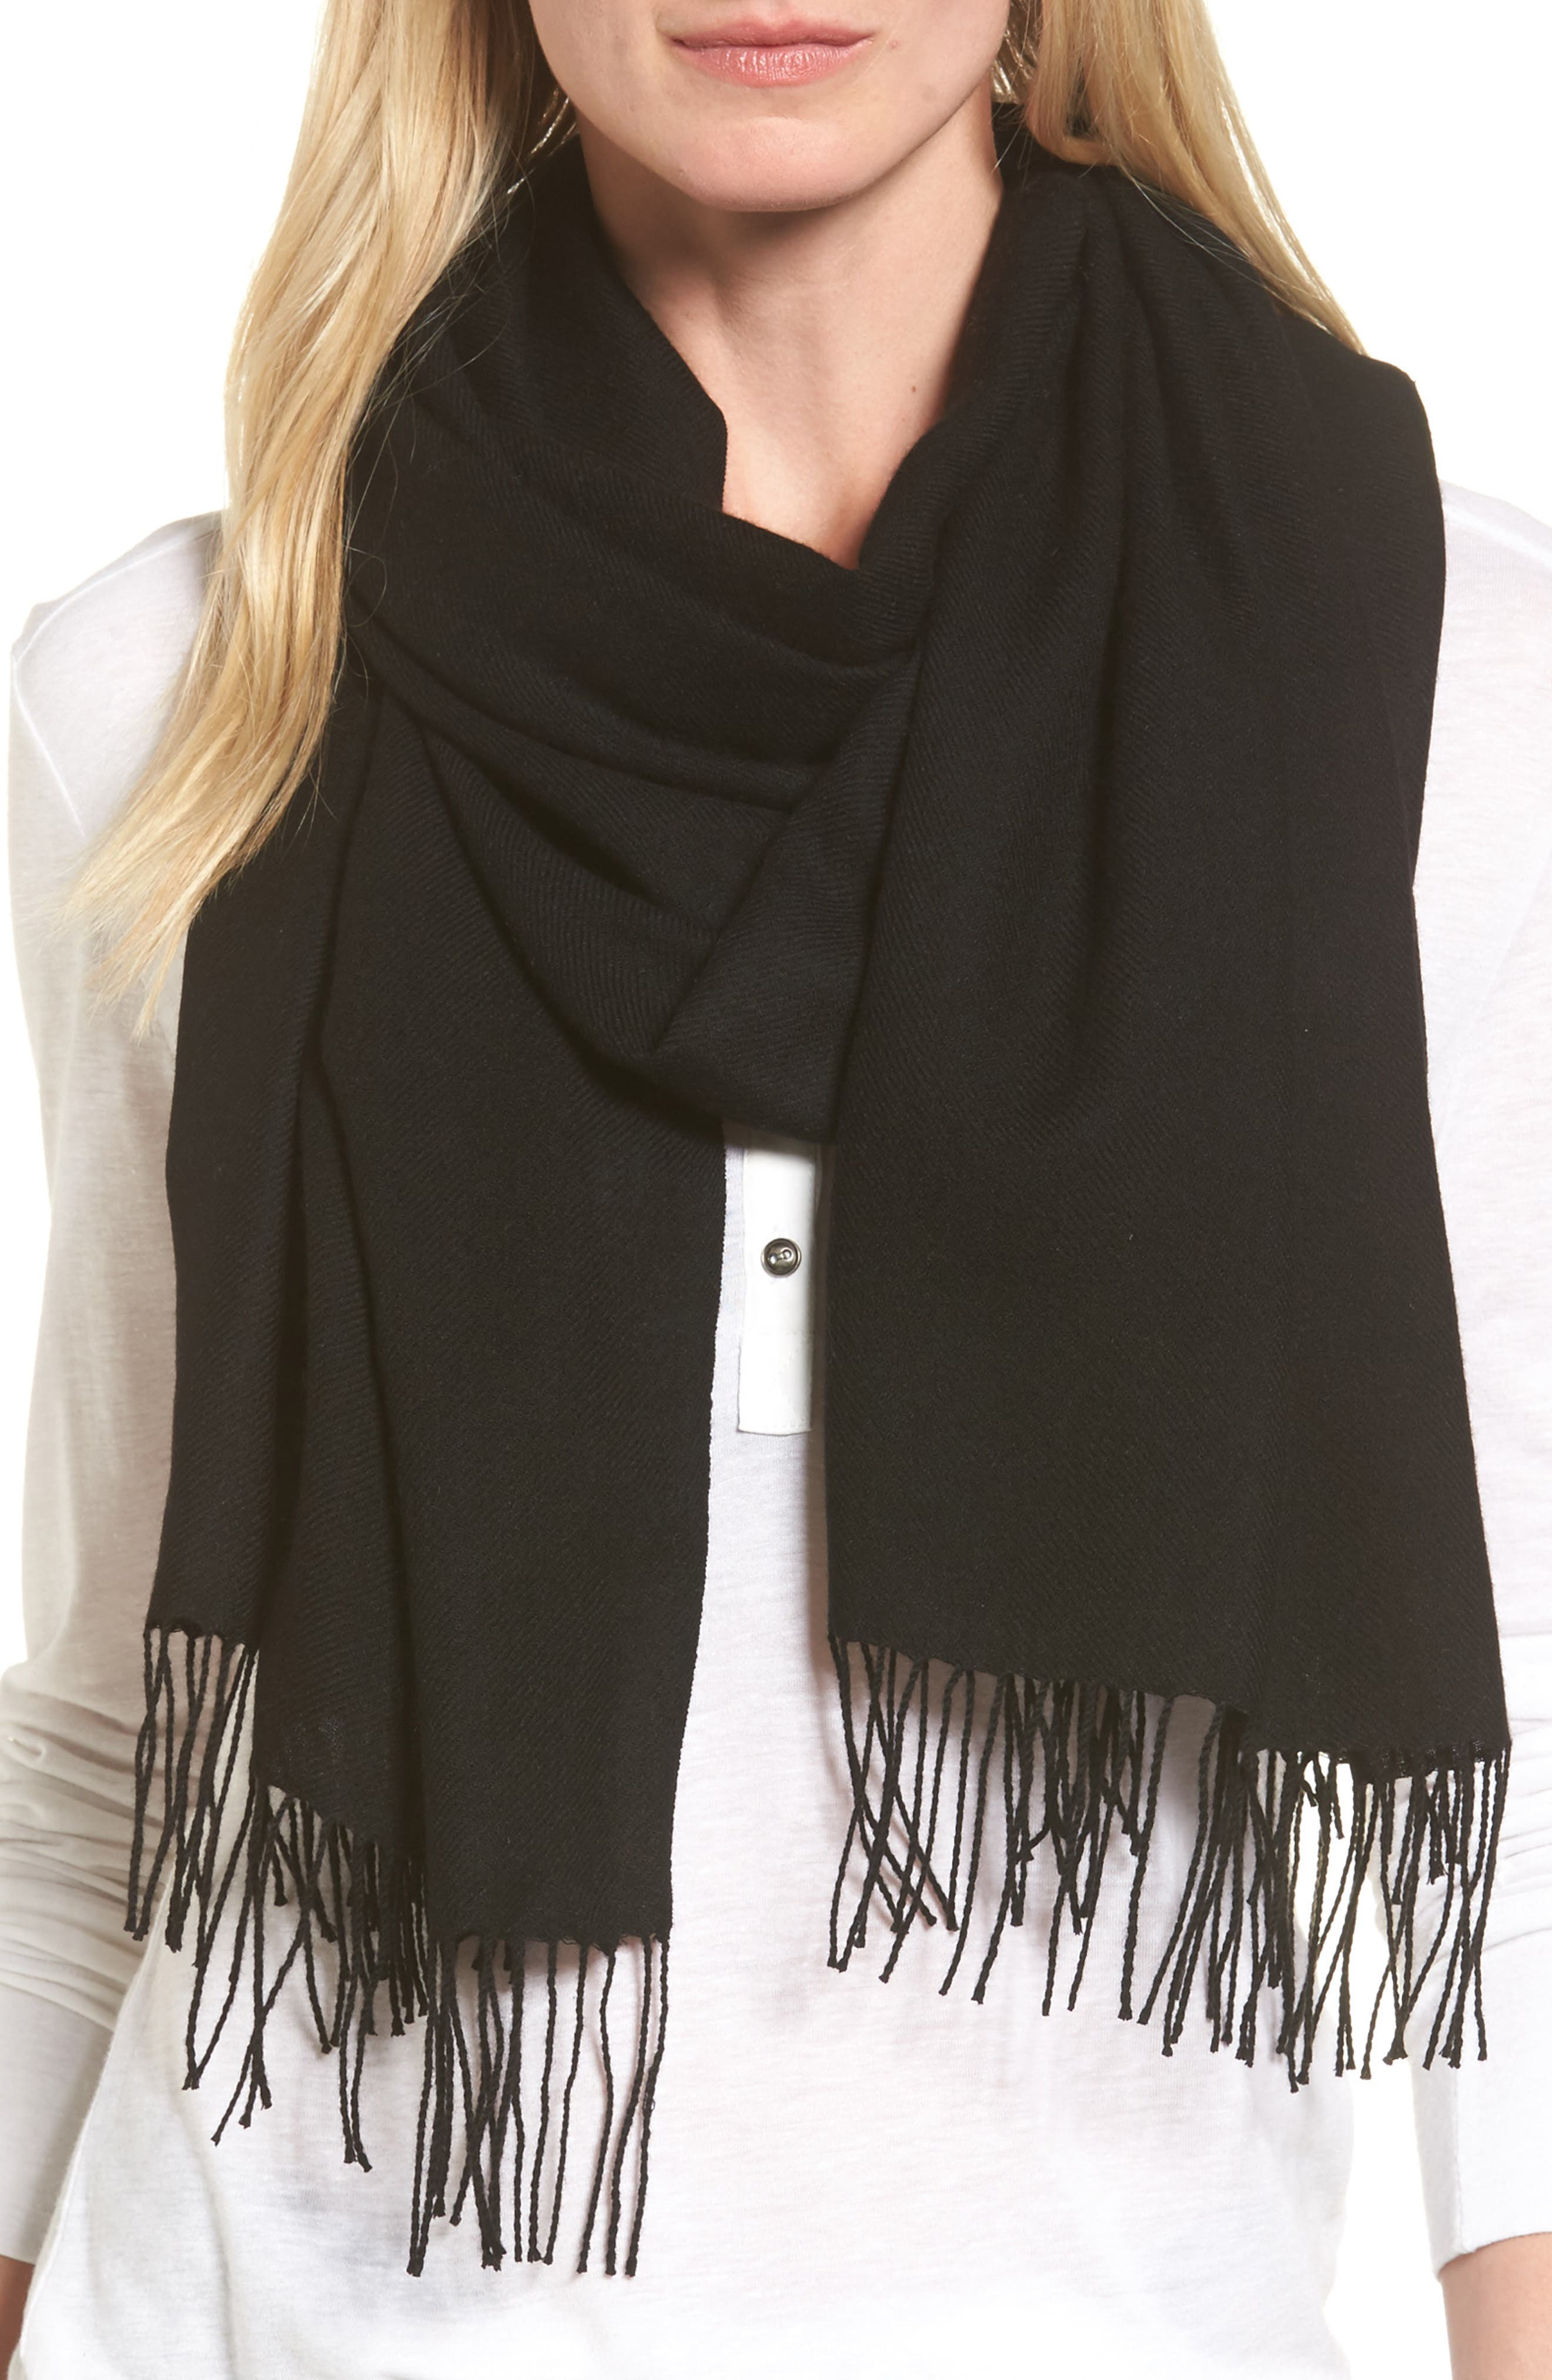 Tissue Weight Wool & Cashmere Scarf,                             Main thumbnail 1, color,                             BLACK